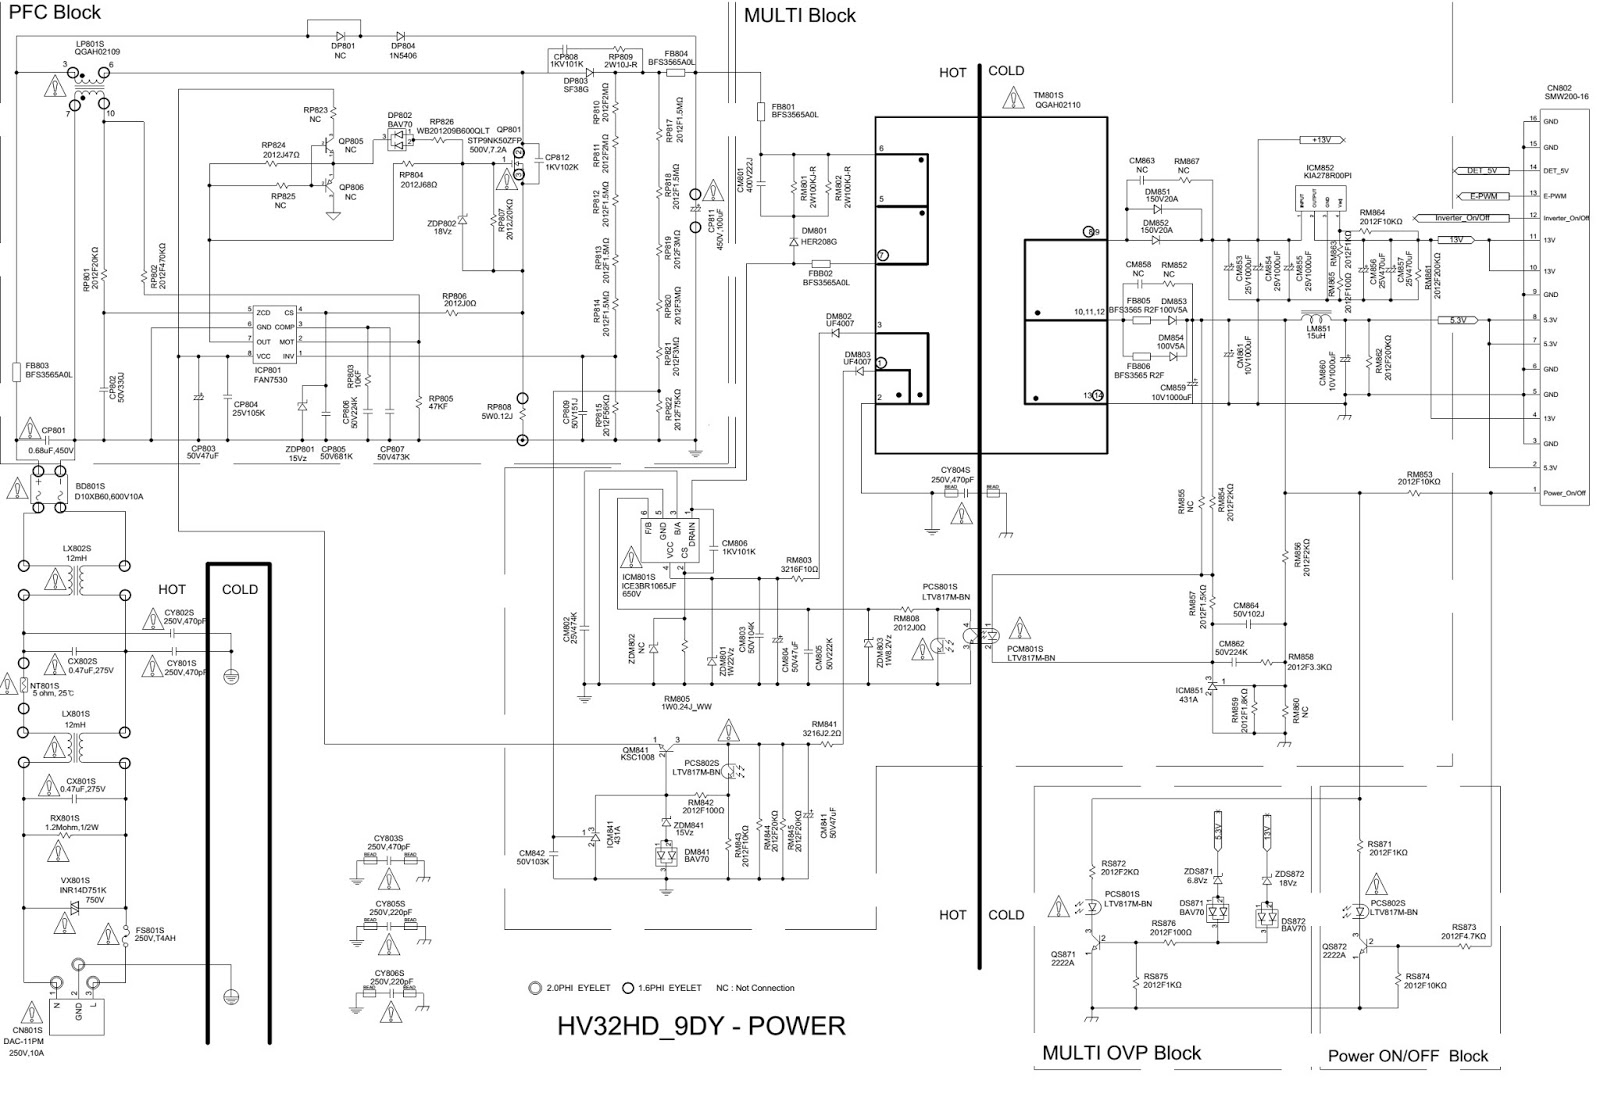 samsung ln 26b350f1 ln 32b350f1 tft lcd tv power and inverter rh electronicshelponline blogspot com LCD TV Circuit Diagram Arduino Schematic Diagram